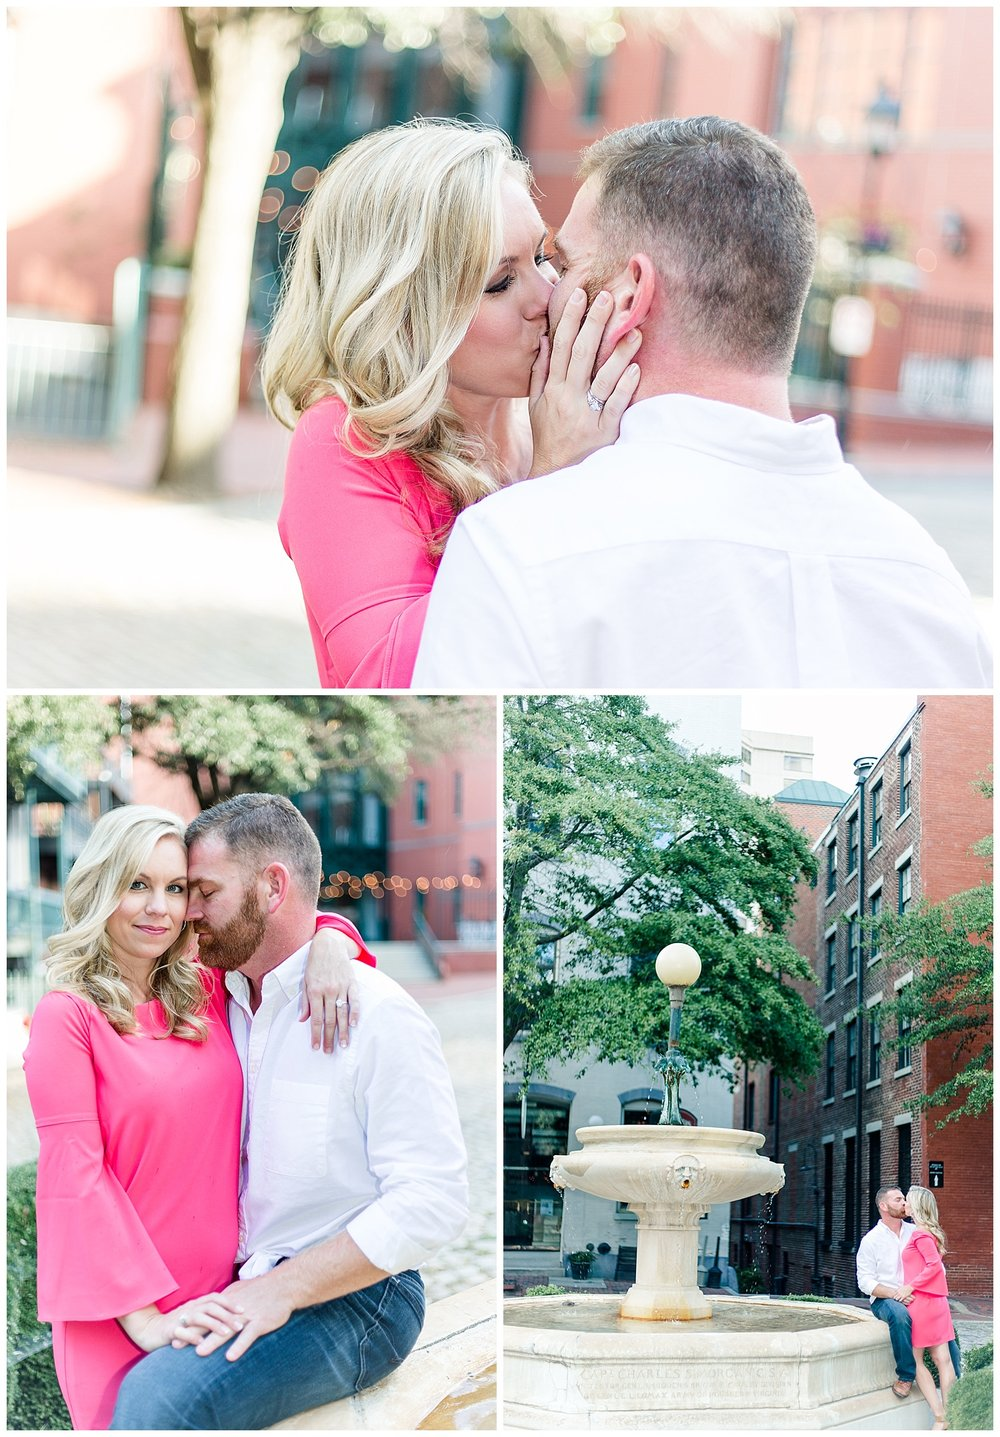 Richmond Fine Art Wedding Photographer Stacie Marshall Arts Photographer - Mike + Marianne Engagement Session Shockoe Slip